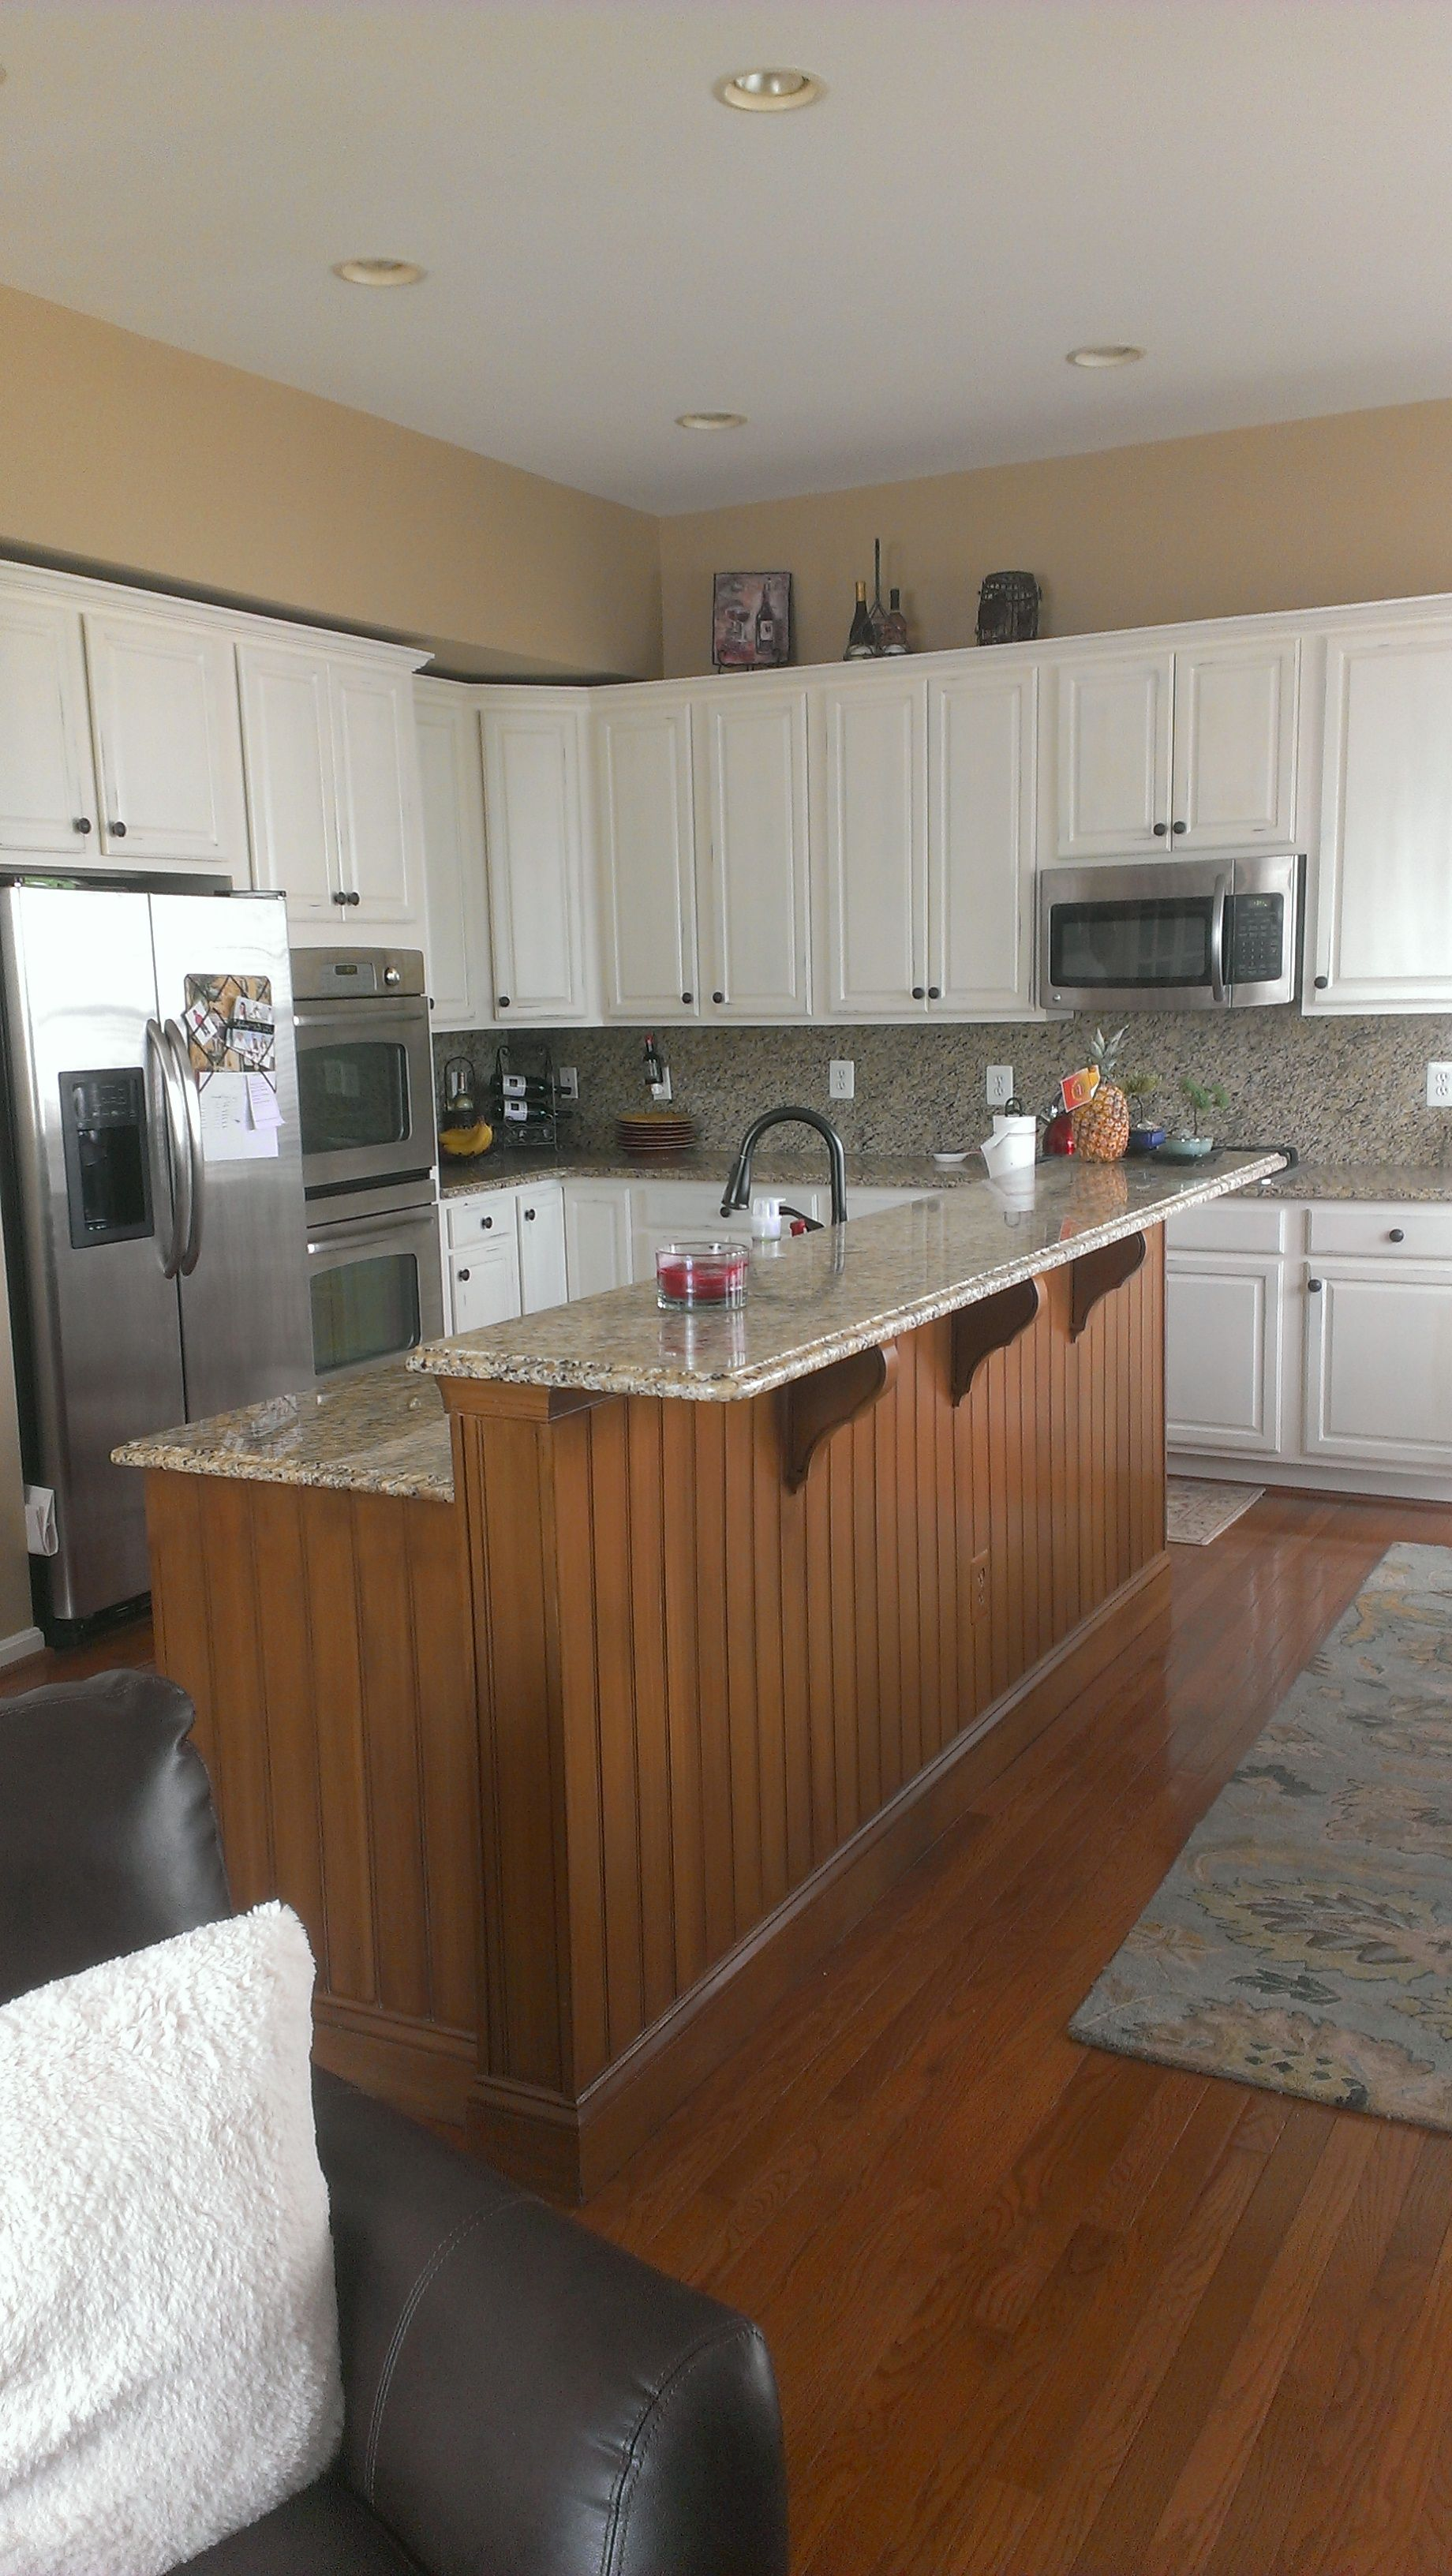 Ace kitchen direct cabinets - From Builders Grade Maple Cabinets Main Cabinetry Finished In A Warm White W Soft Distressing